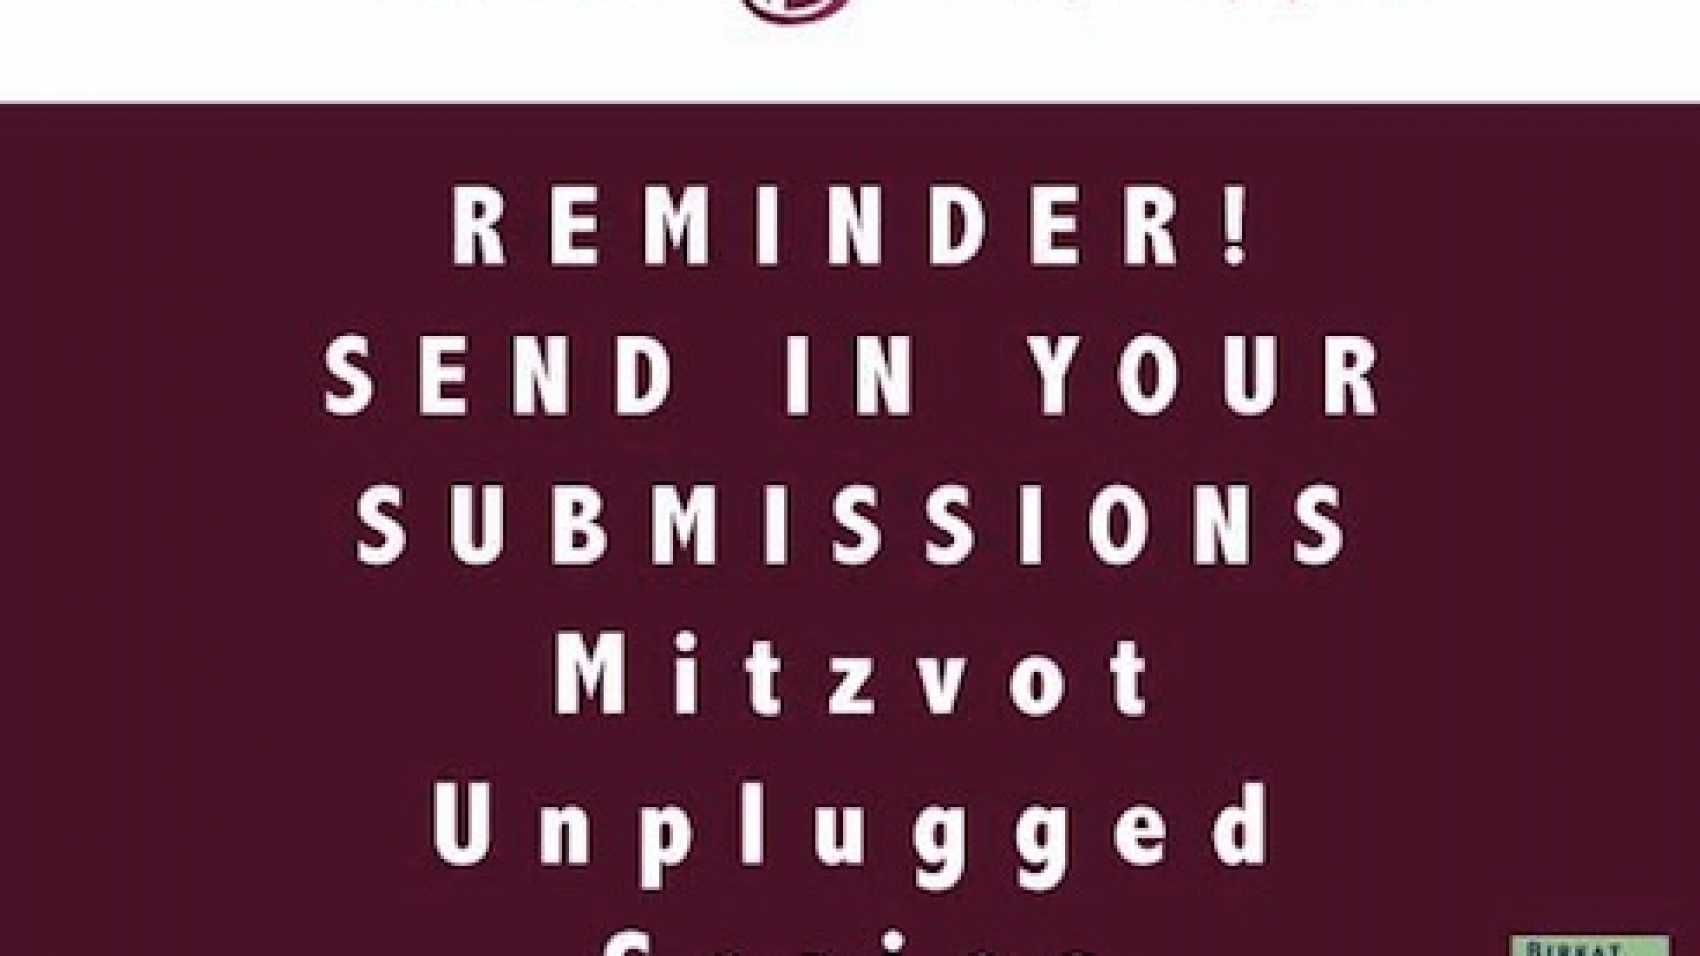 Reminder Mitzvot Unplugged Submissions